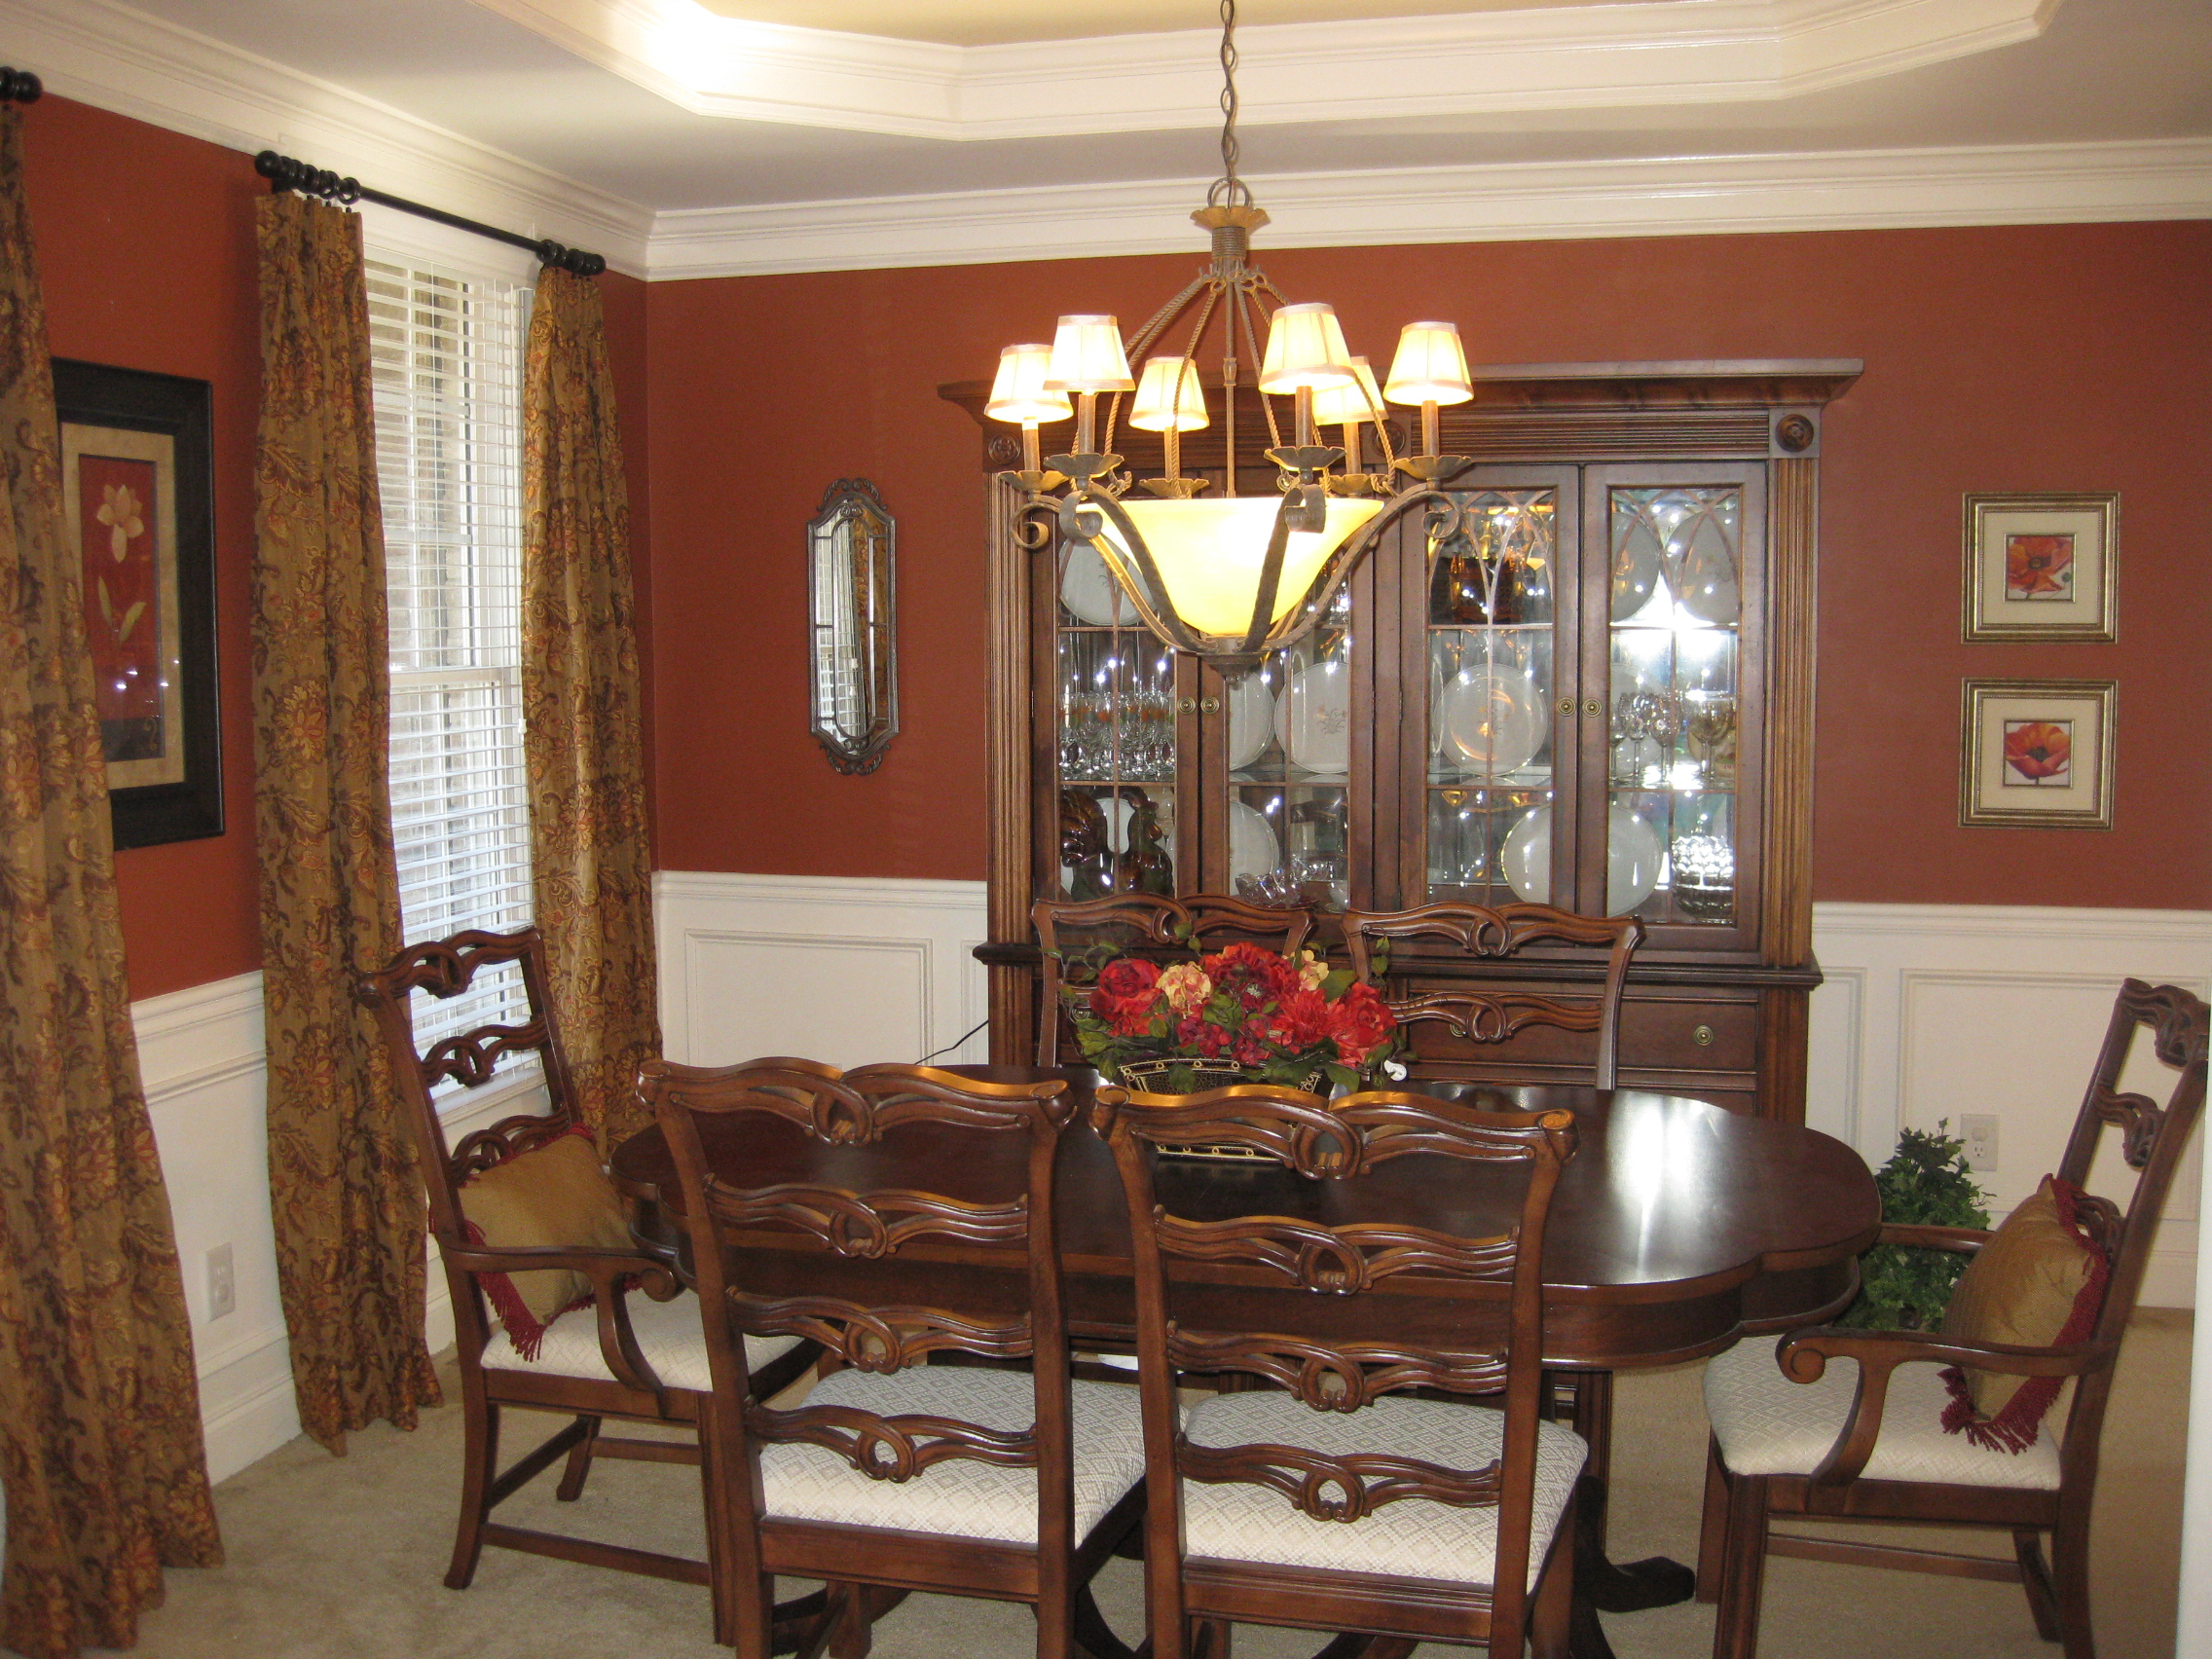 traditional dining room ideas traditional dining room decorating ideas 20 architecture enhancedhomes org 6501